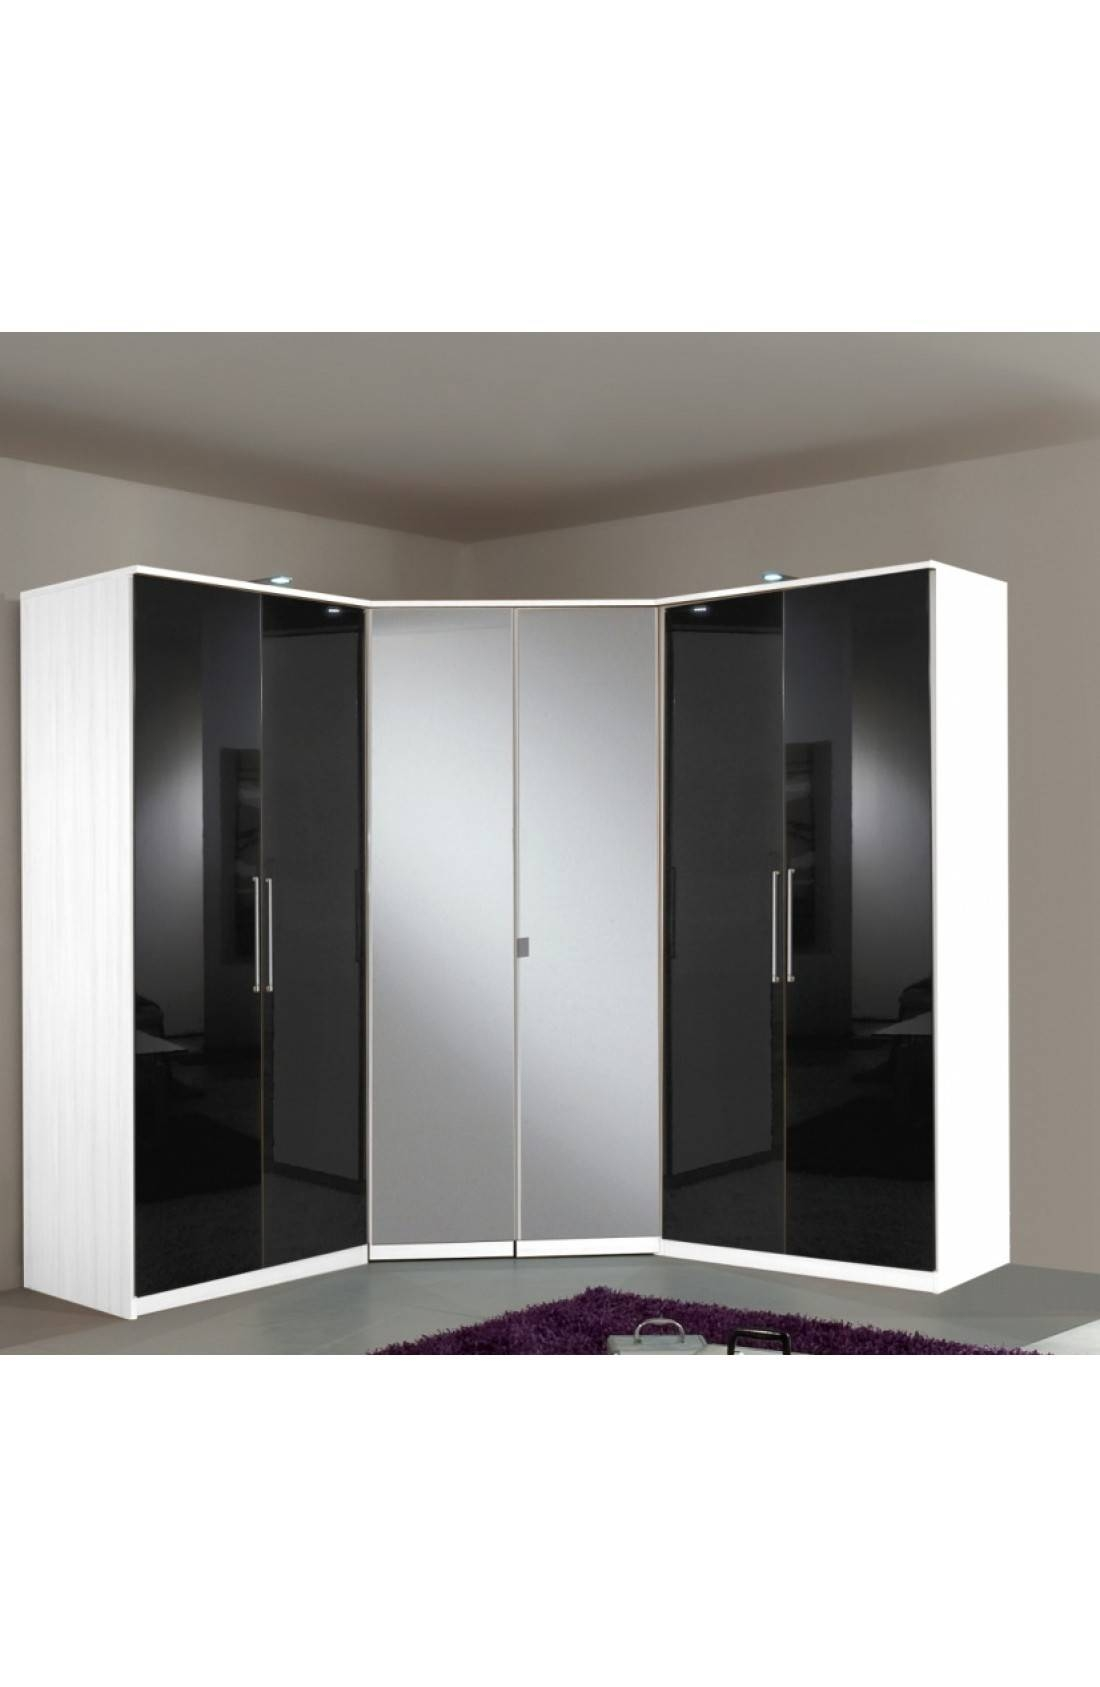 Slumberhaus 'gamma' 6 Door Corner Wardrobe Fitment With White in Corner Mirrored Wardrobes (Image 11 of 15)